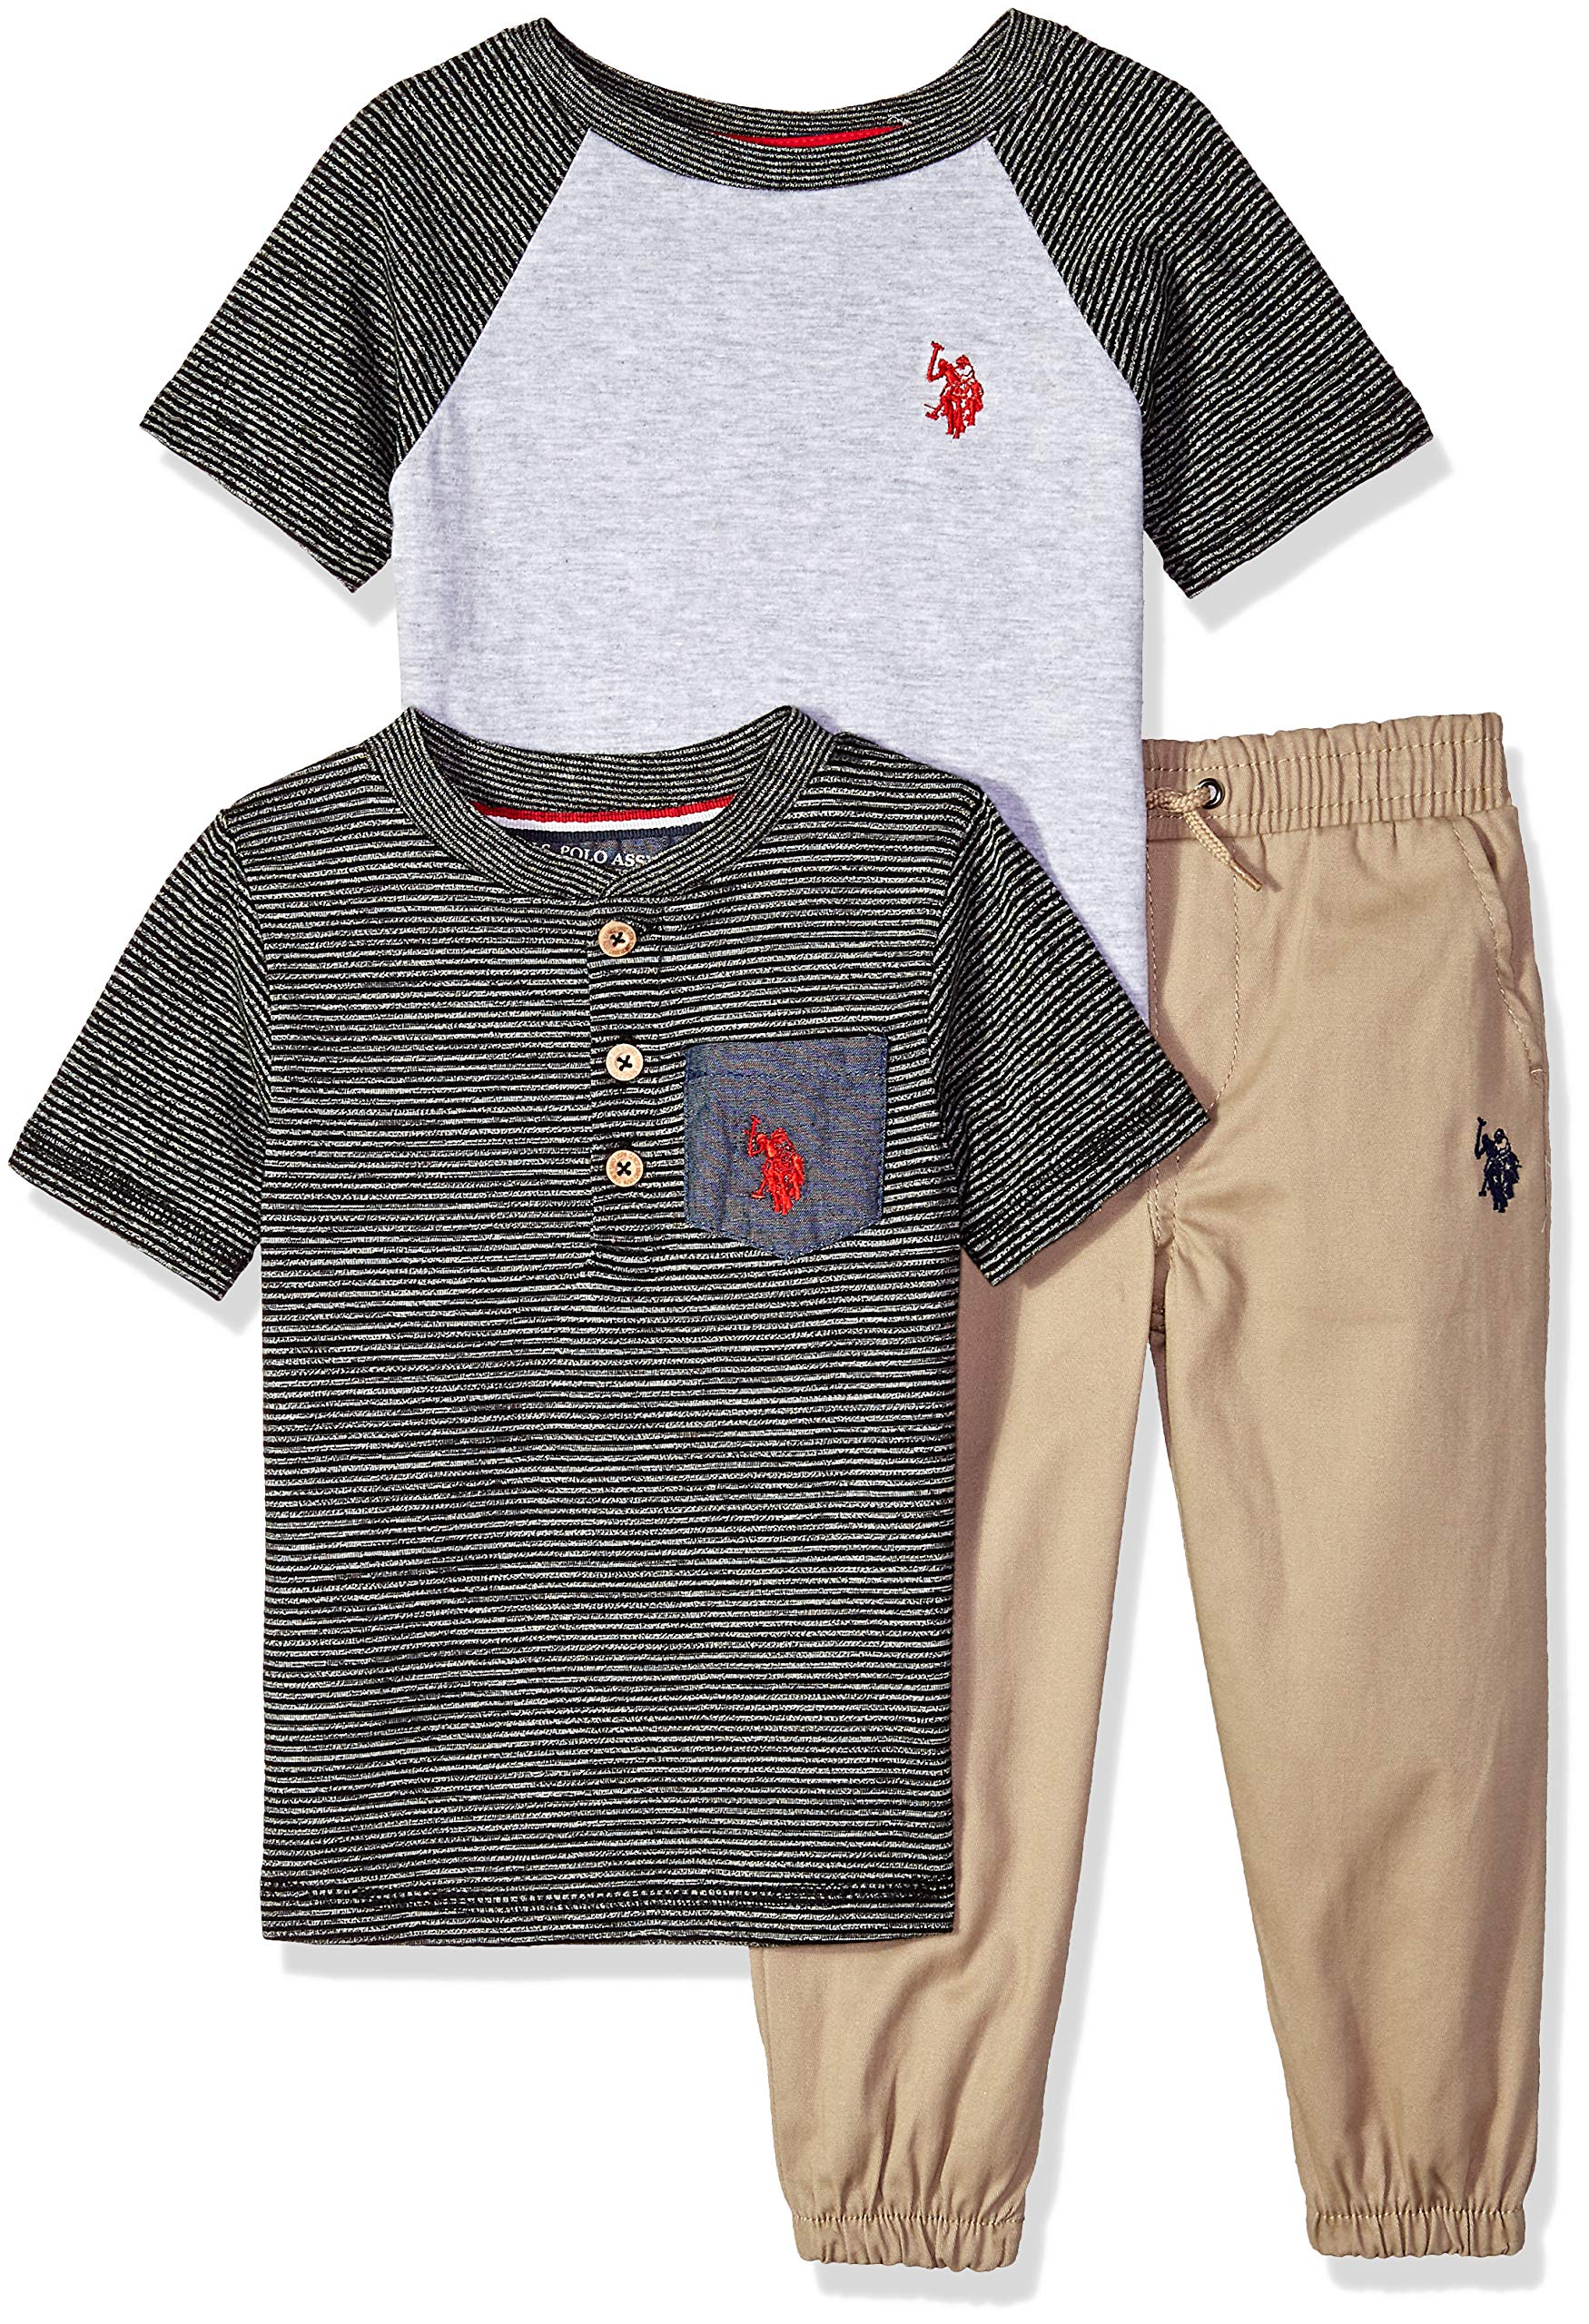 U.S. Polo Assn. Boys' Big T-Shirt and Pant 3 Piece Set, Red Logo with Space Dye Stripes Black, 10